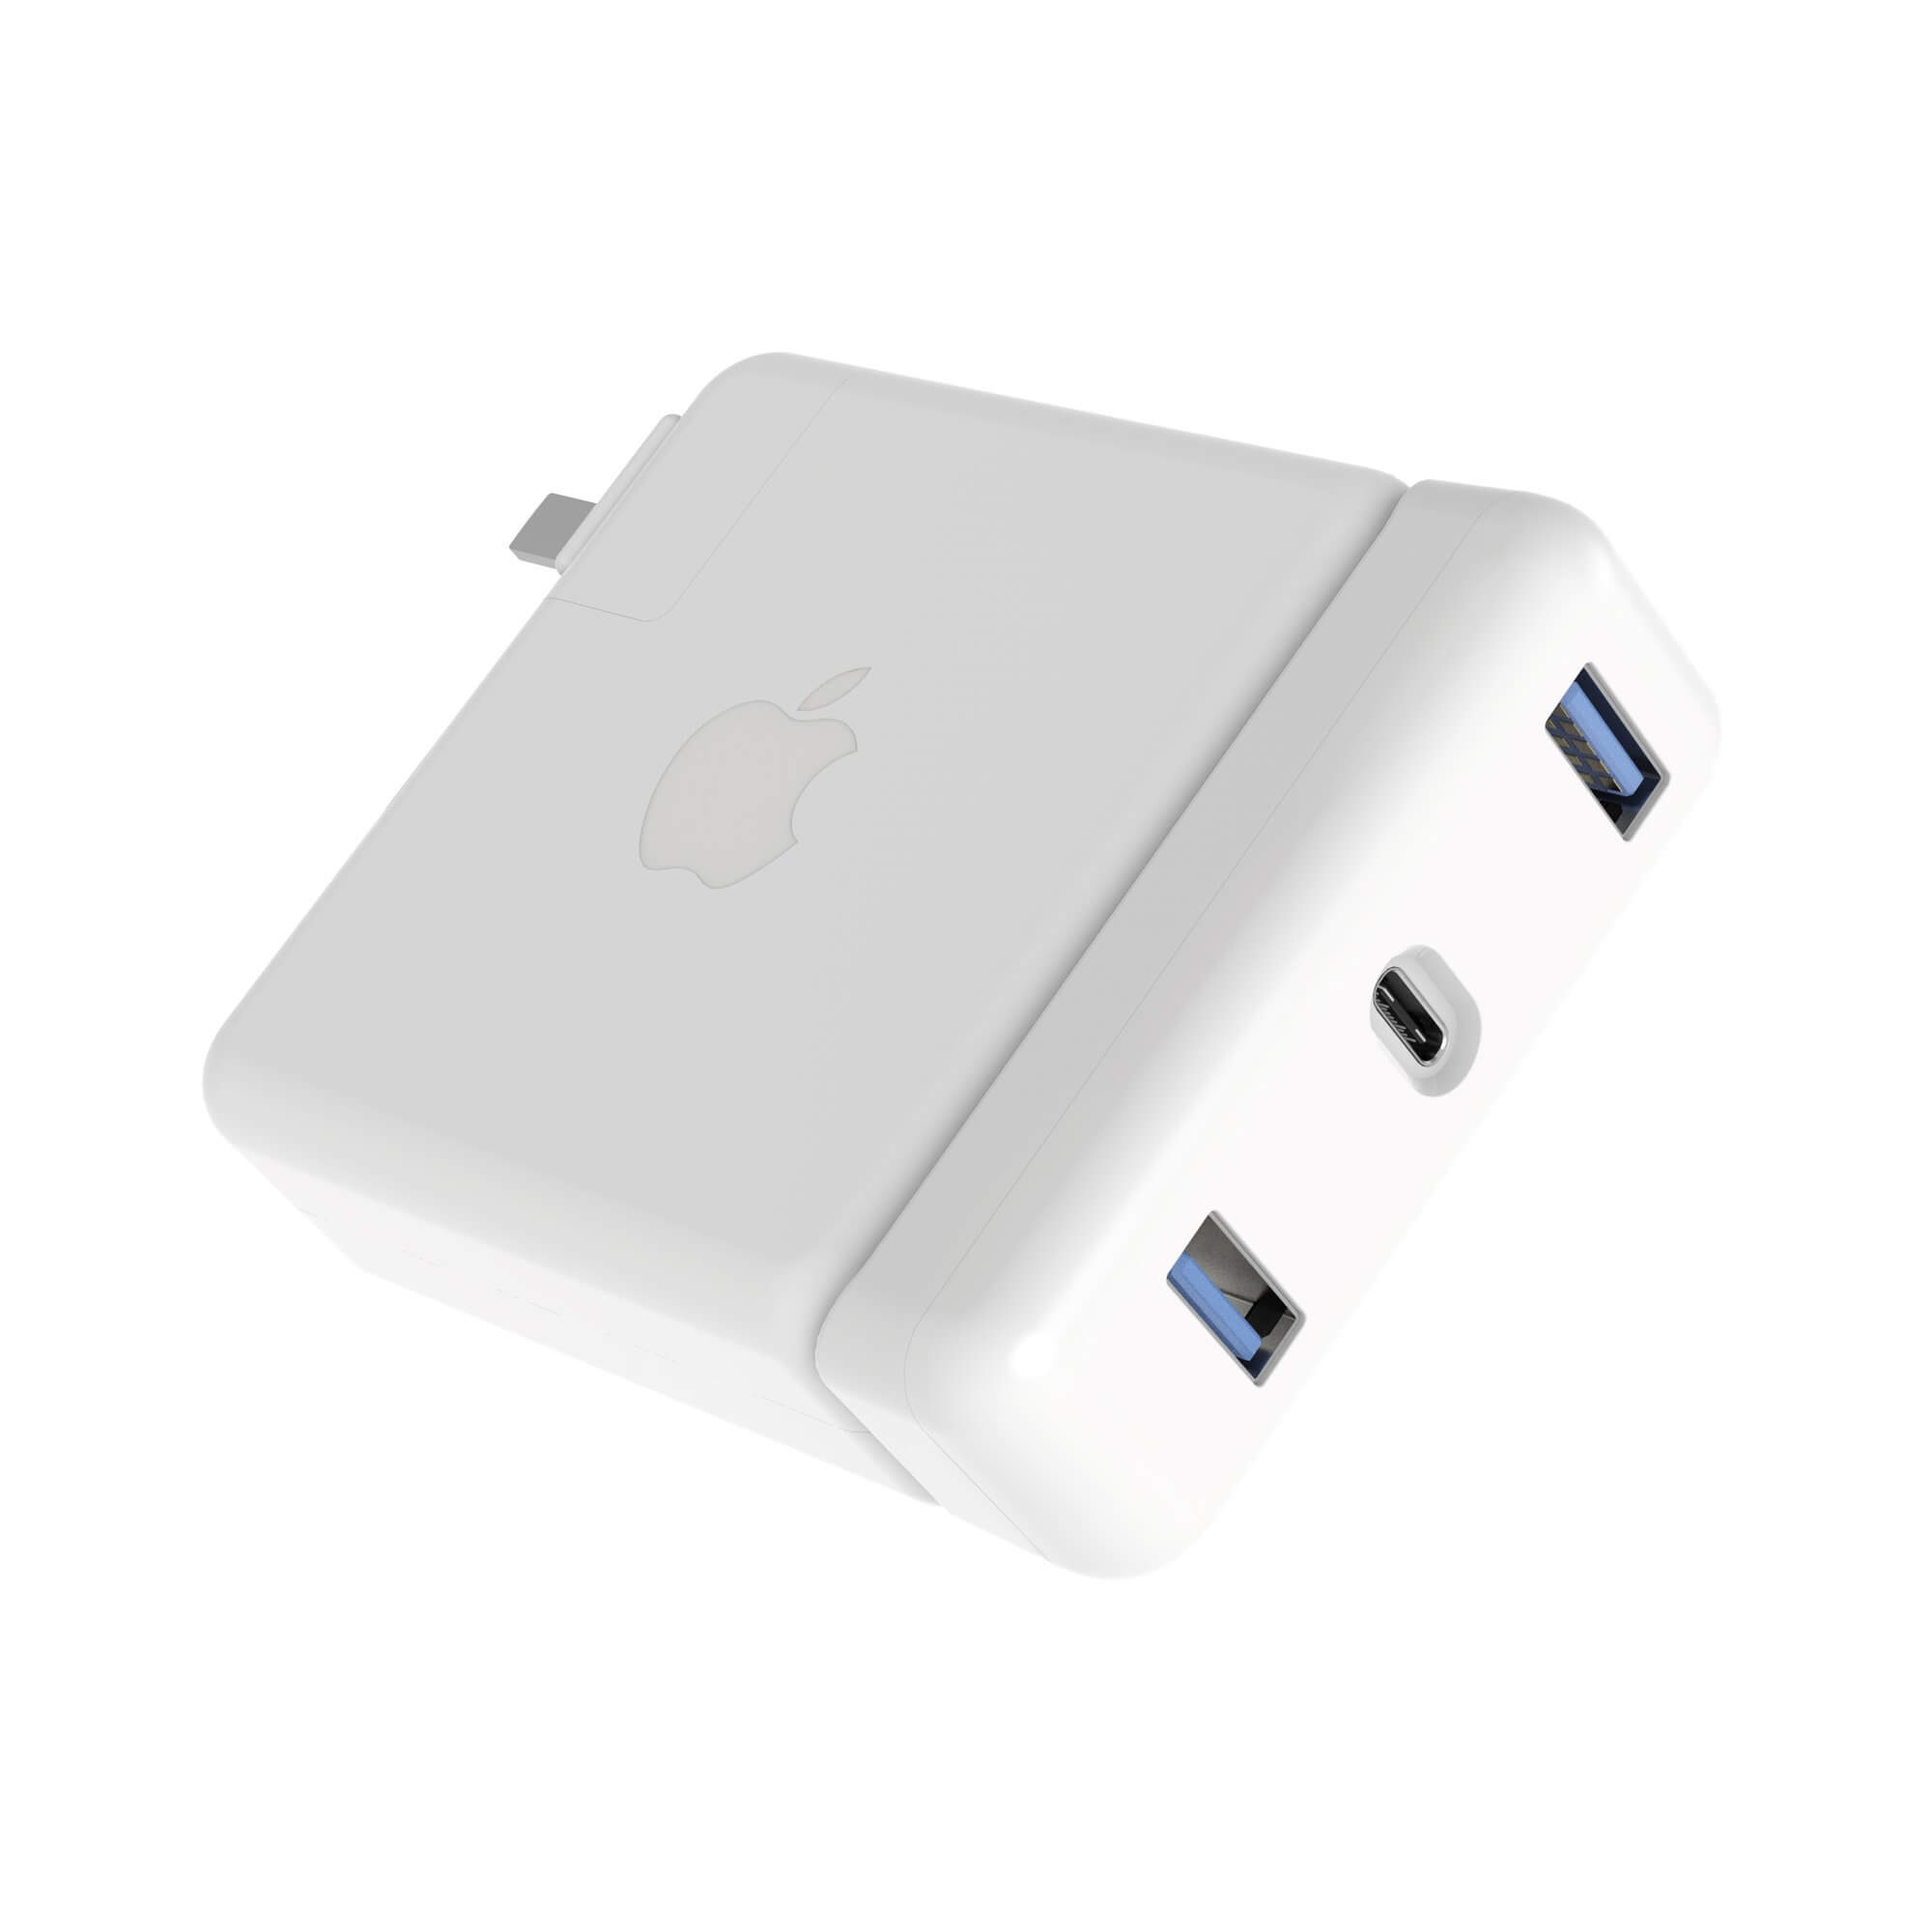 HyperDrive USB-C Hub 87W Power Adapter - USB-C хъб с два USB изхода за Apple 87W USB-C Power Adapter (бял)